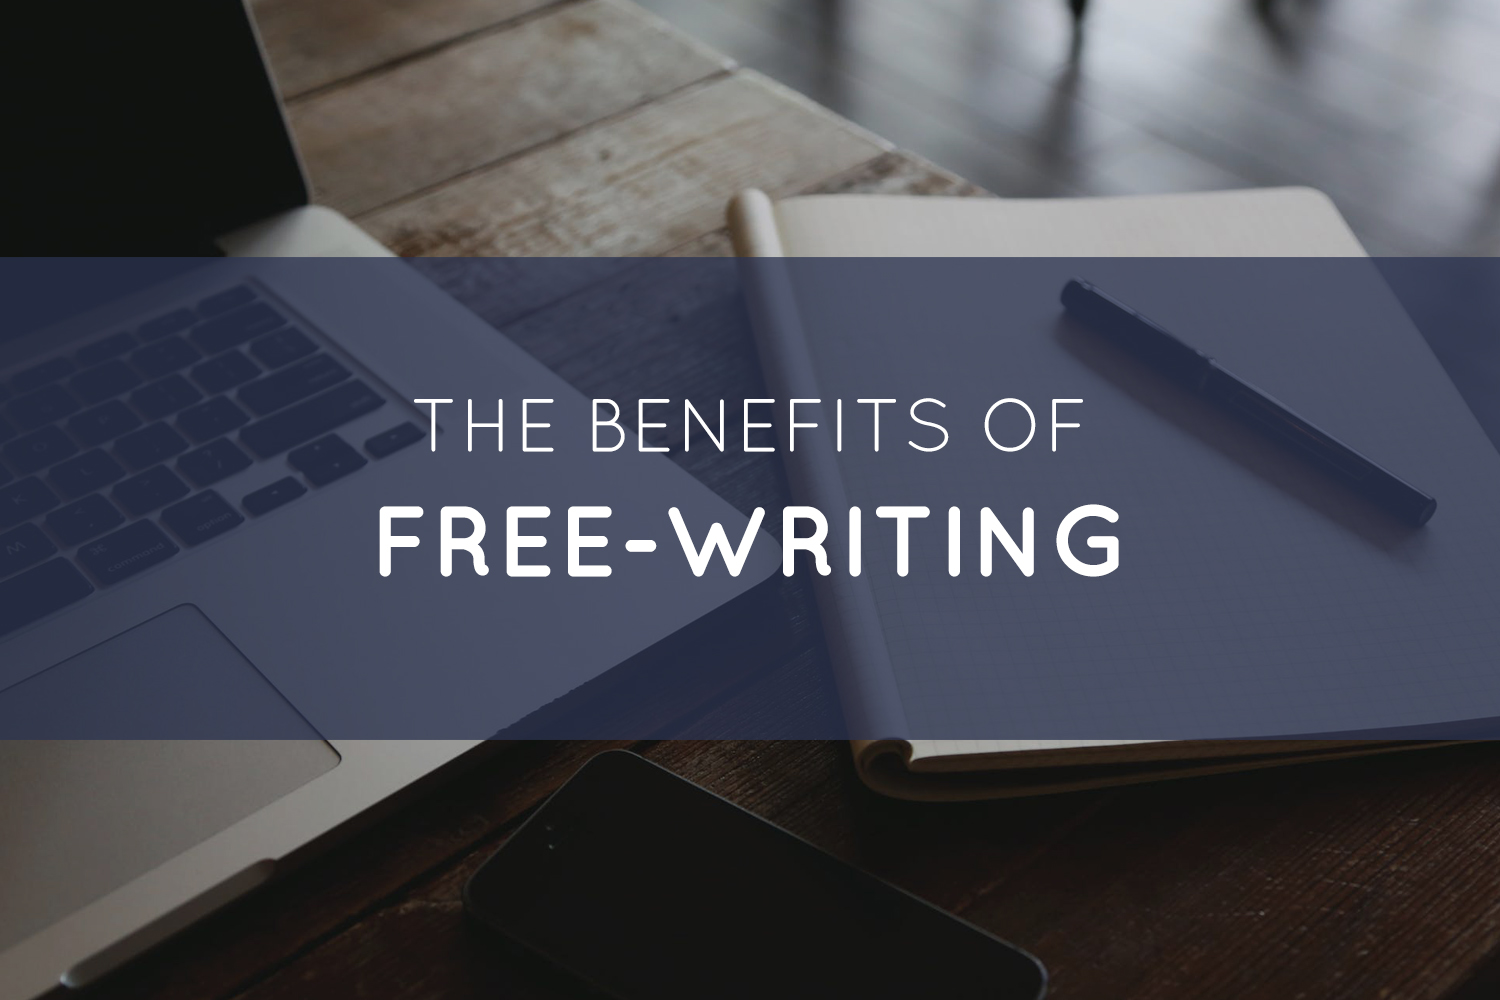 The Benefits of Free-Writing